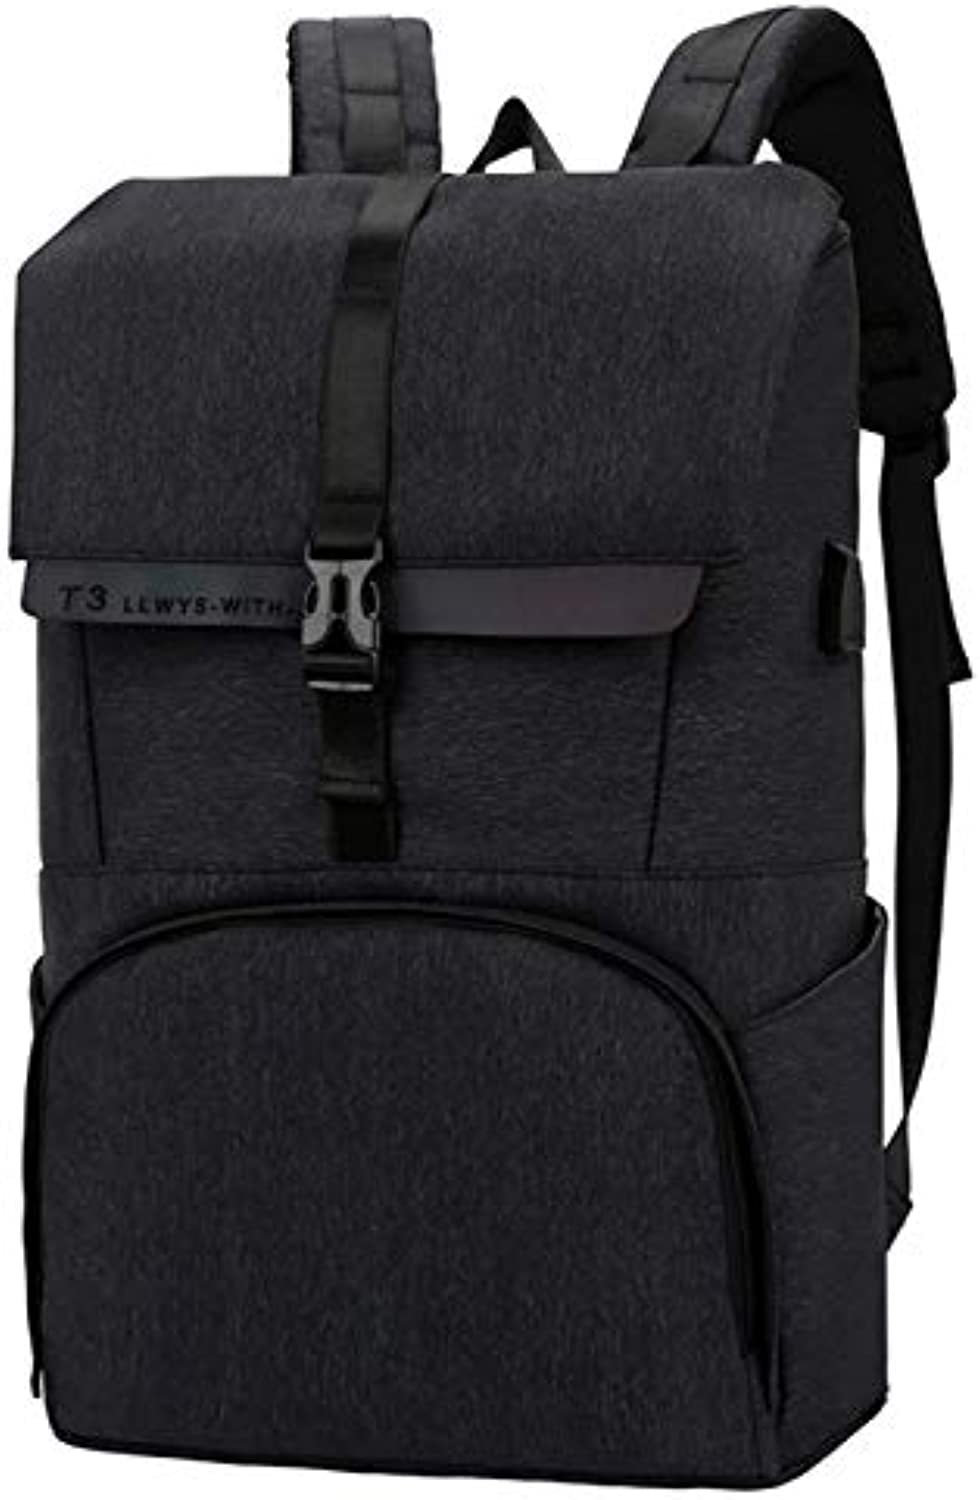 Bjzxz AntiTheft Business Backpack in The College Student Bag USB Charging Business Computer Bag Travel Backpack